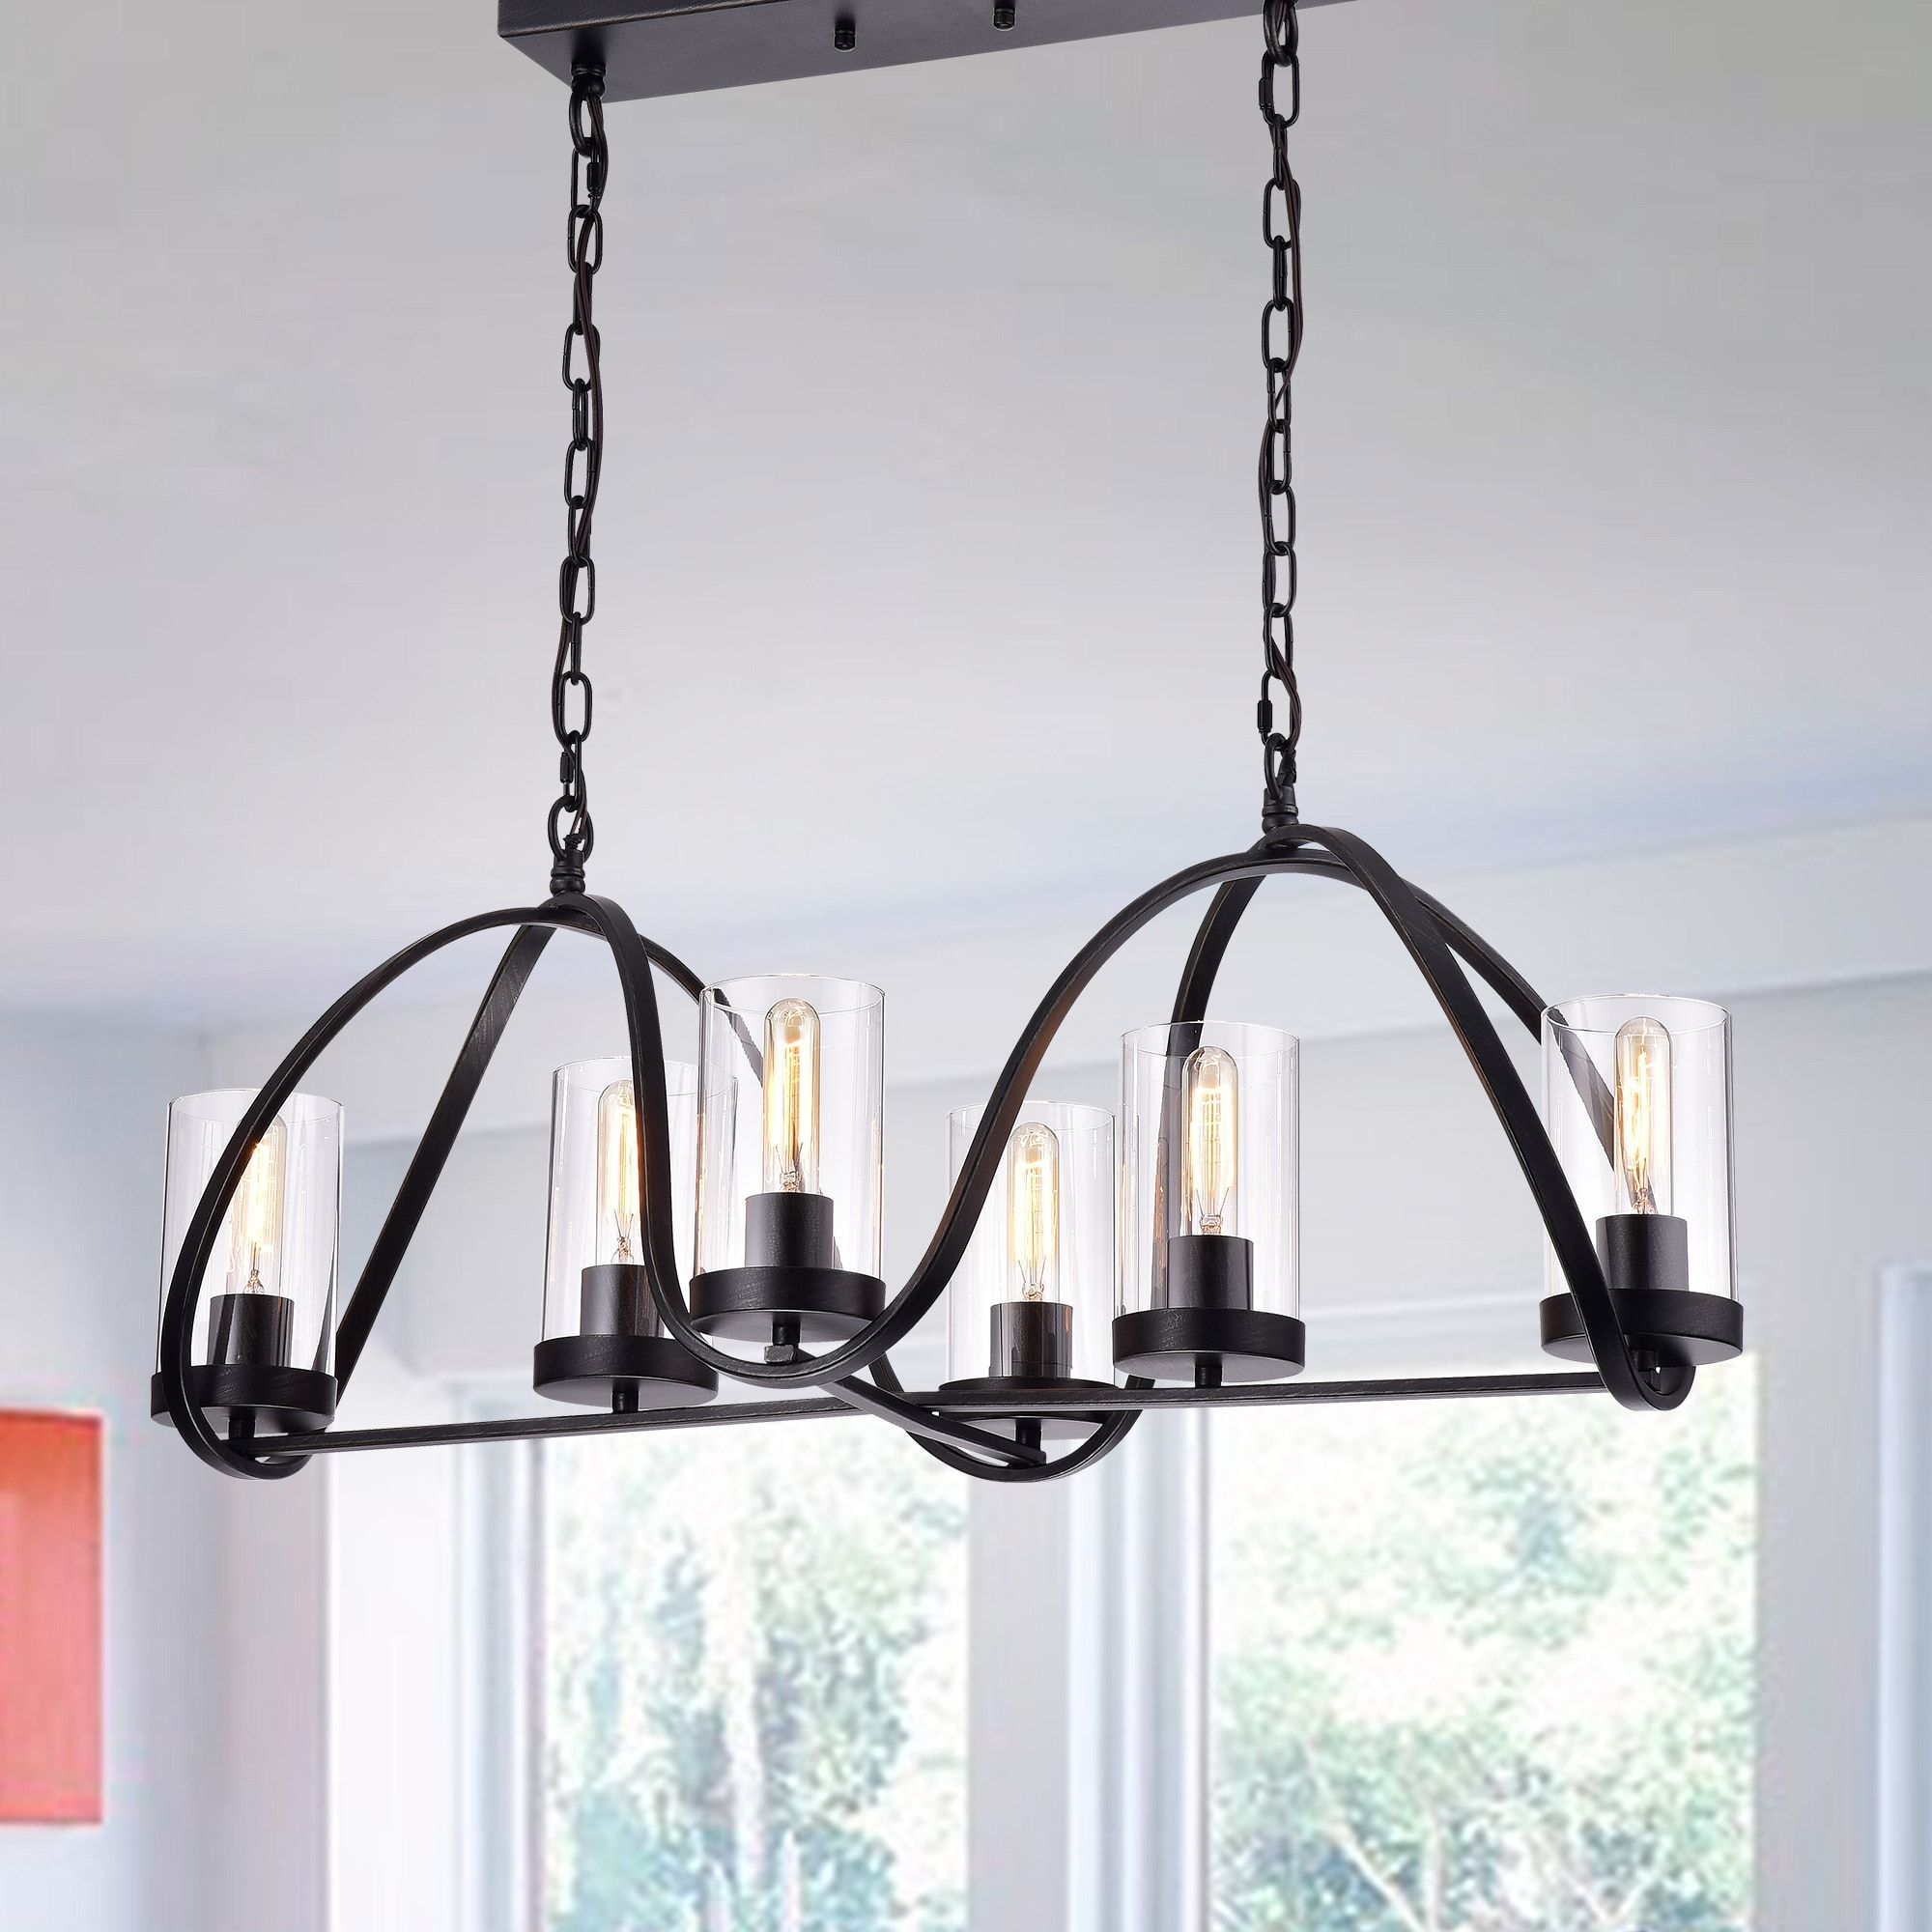 Daniela Antique Black Iron 6 Light Chandelier With Rectangular Base And Clear Glass Cylinder Shades